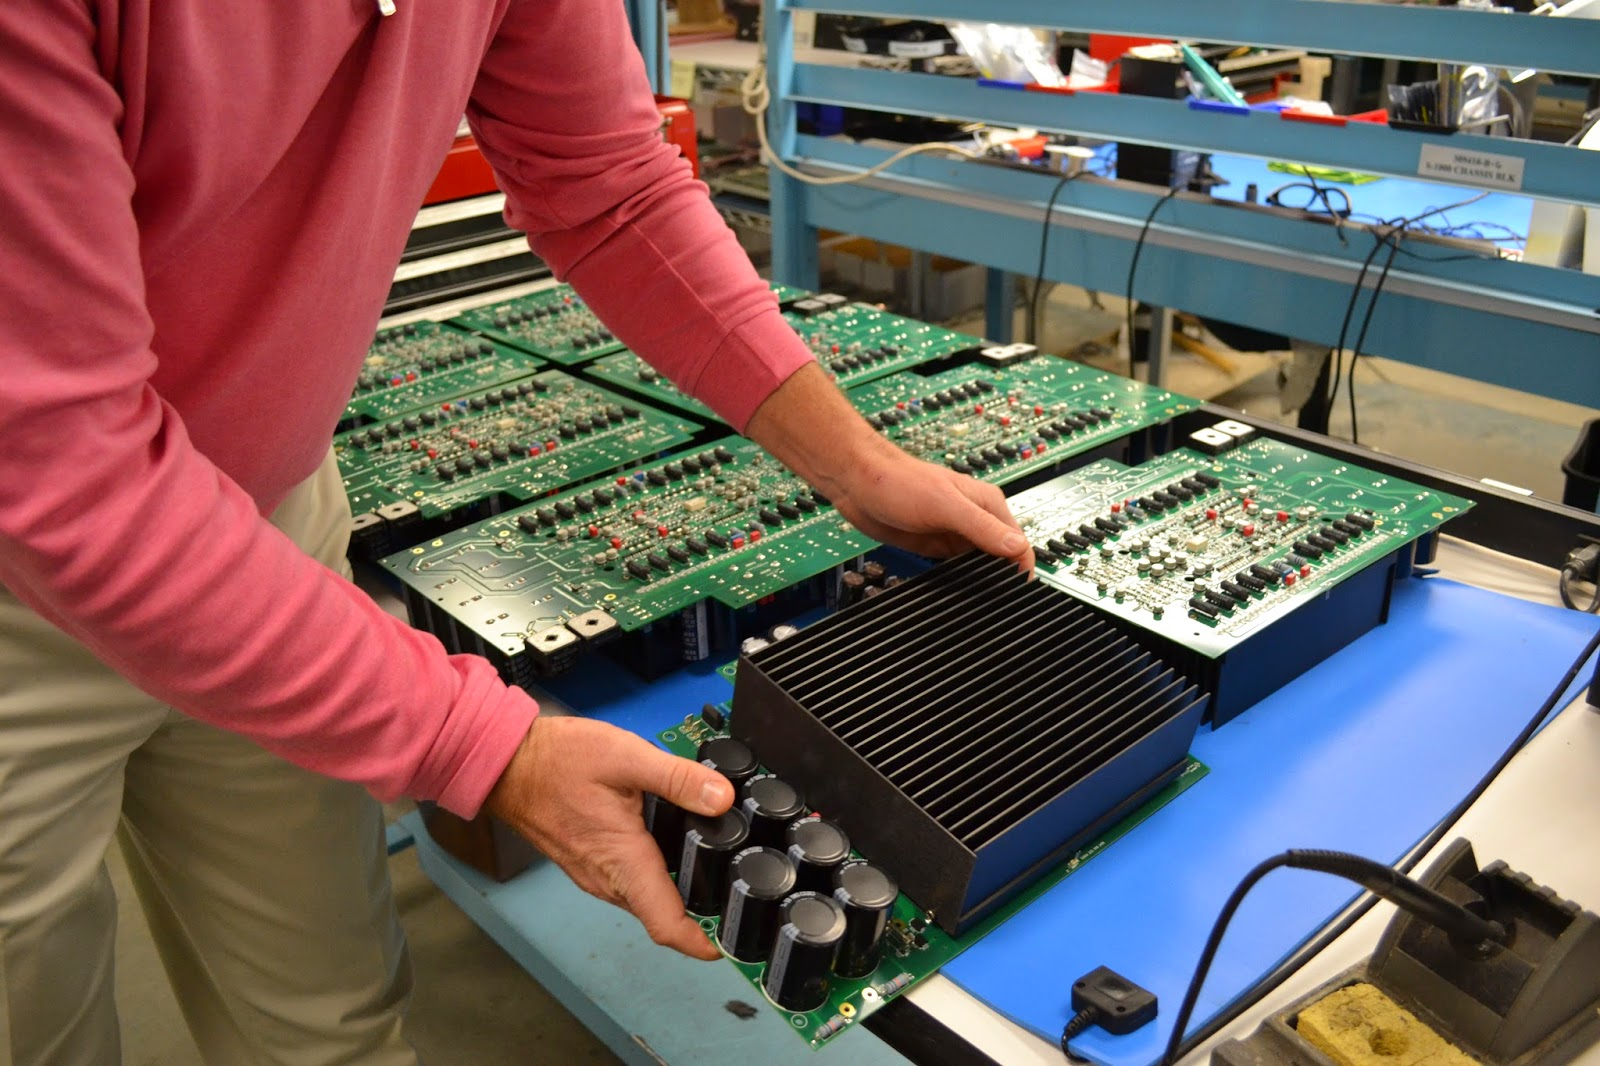 Krell Factory Tour: A Behind the Scenes Look at What Makes